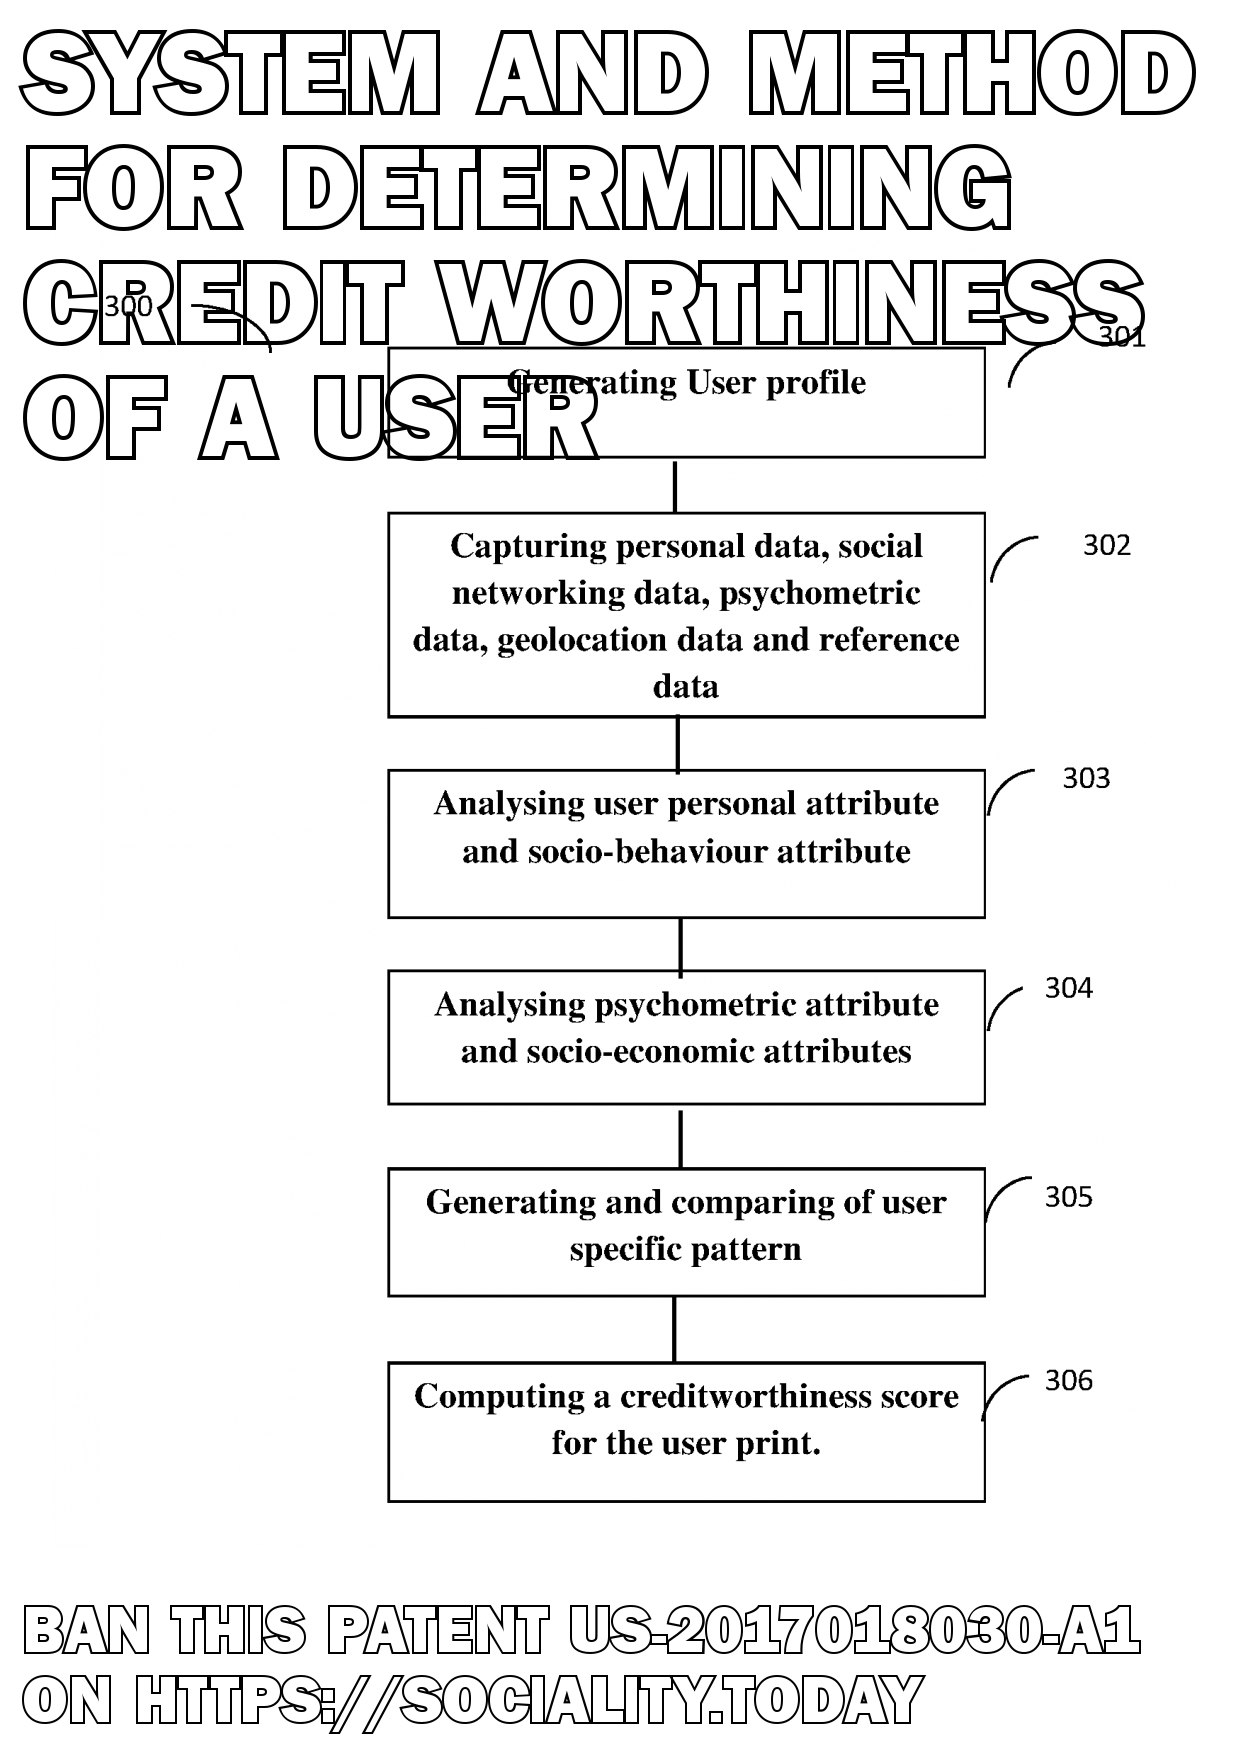 System and Method for Determining Credit Worthiness of a User  - US-2017018030-A1